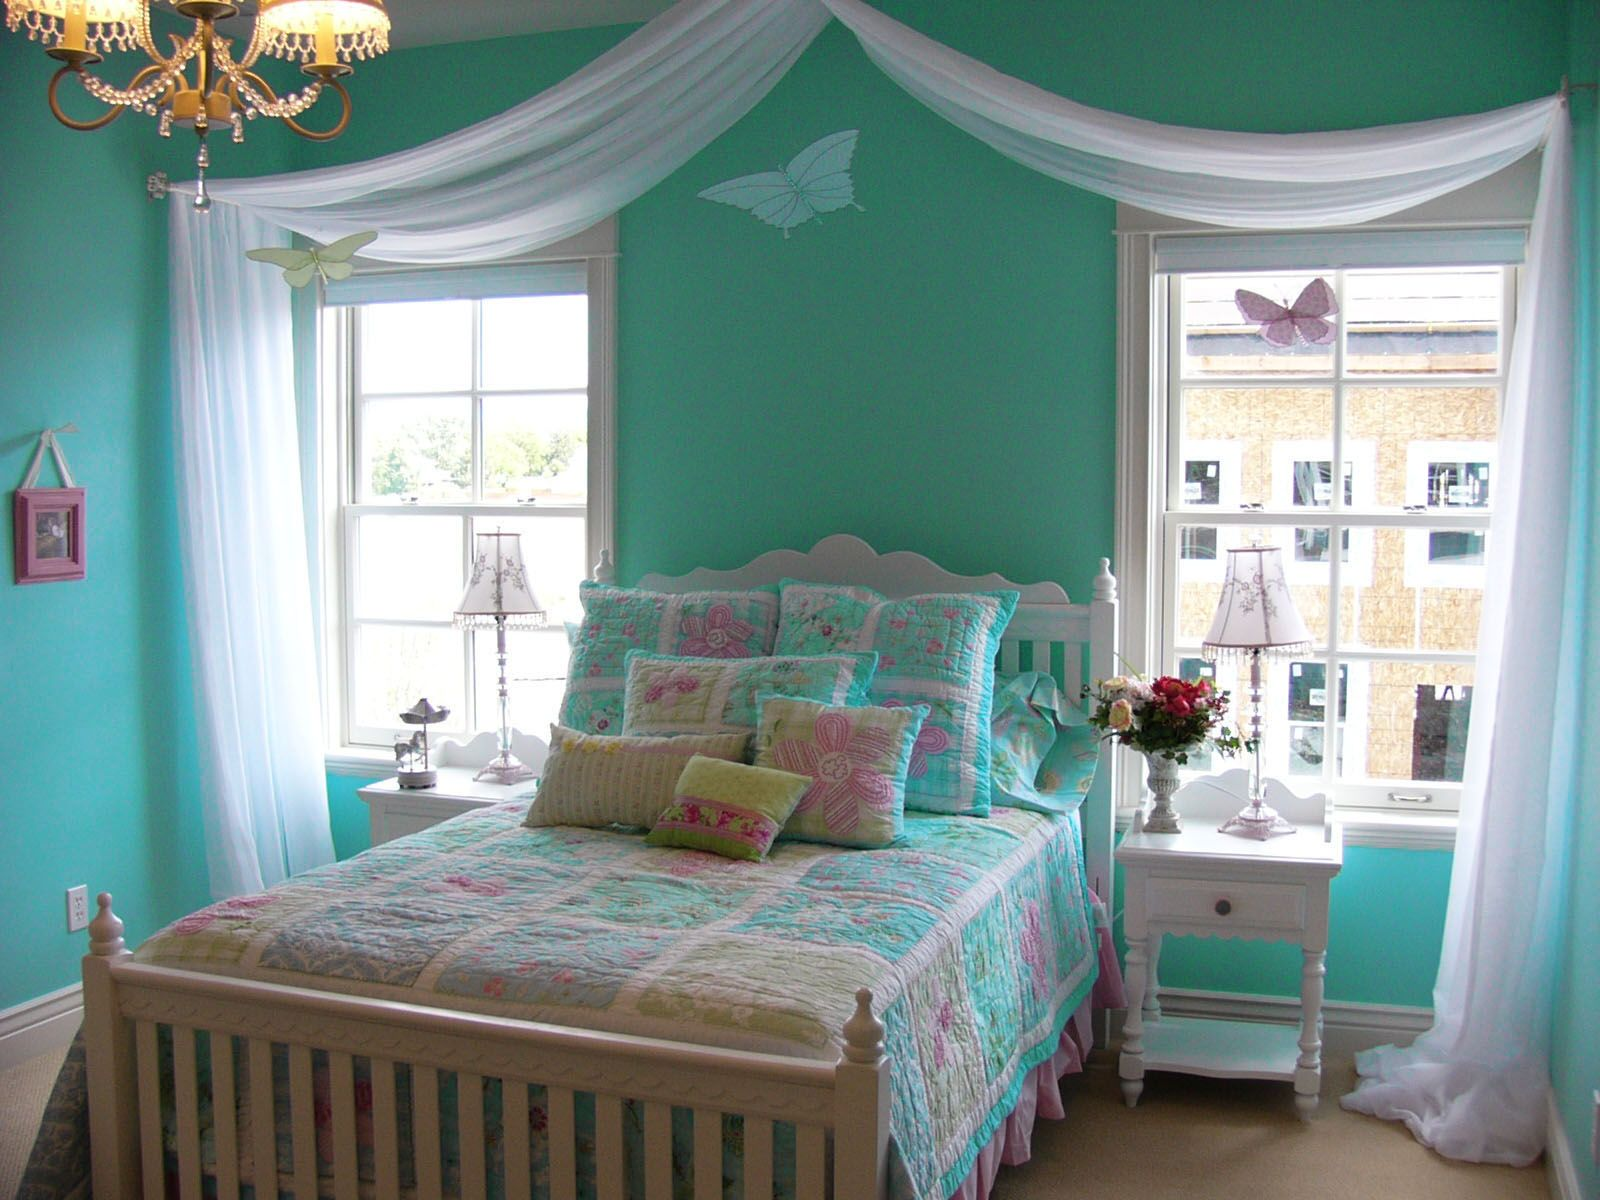 Nice room colors for girls - Turquoise Wall Paint Color Bedroom Ideas Decorating Using